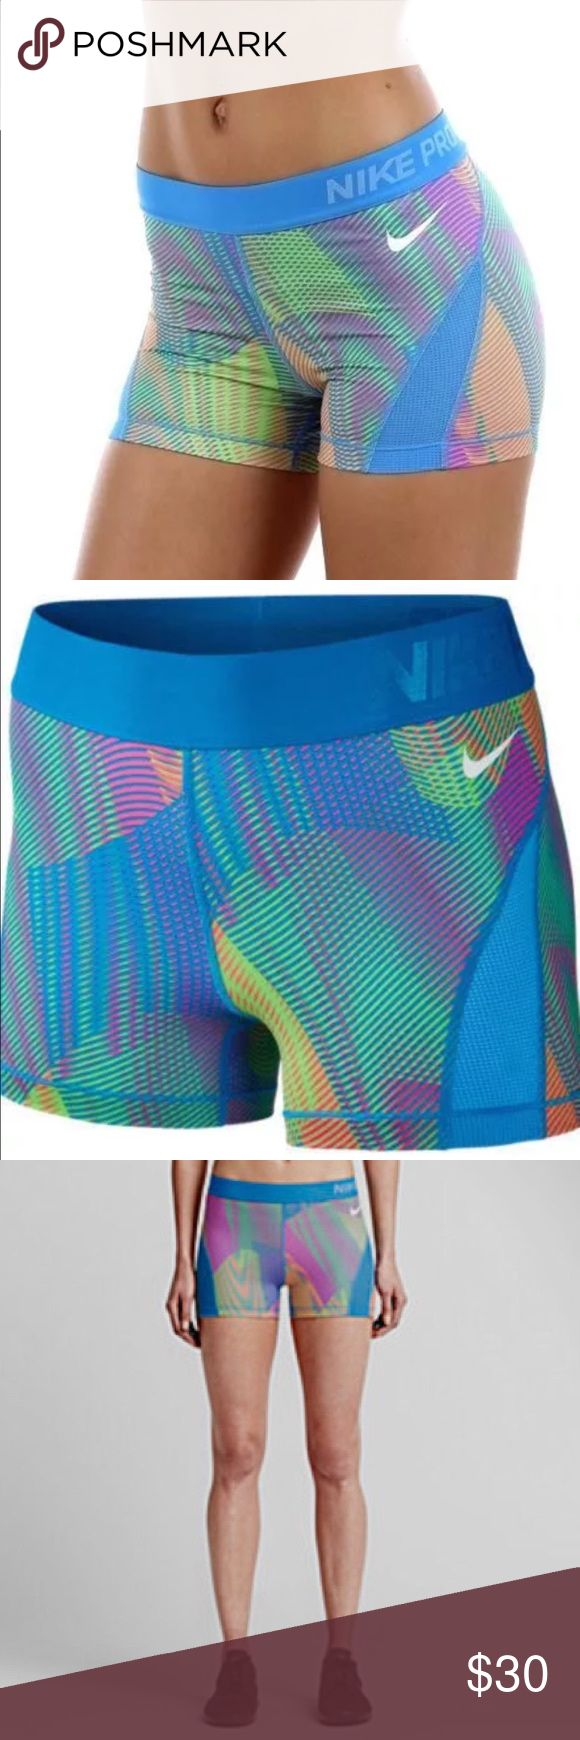 """Nike Pro 3"""" Hypercool Women's Training Shorts NEWEST DESIGN!  The Nike Pro Hypercool Frequency Women's Training Shorts are designed with stretchy sweat-wicking fabric & mesh for streamlined comfort & incredible ventilation where you need it most. Dri-FIT fabric helps by wicking sweat away from the skin to the fabric's surface, where it quickly evaporates. Fabric - Body: Dri-FIT 80% Polyester/20% Spandex. Gusset Lining: Dri-FIT 100% Polyester.  Color(s): Light Photo Blue/Hyper Pink.  MSRP $45…"""